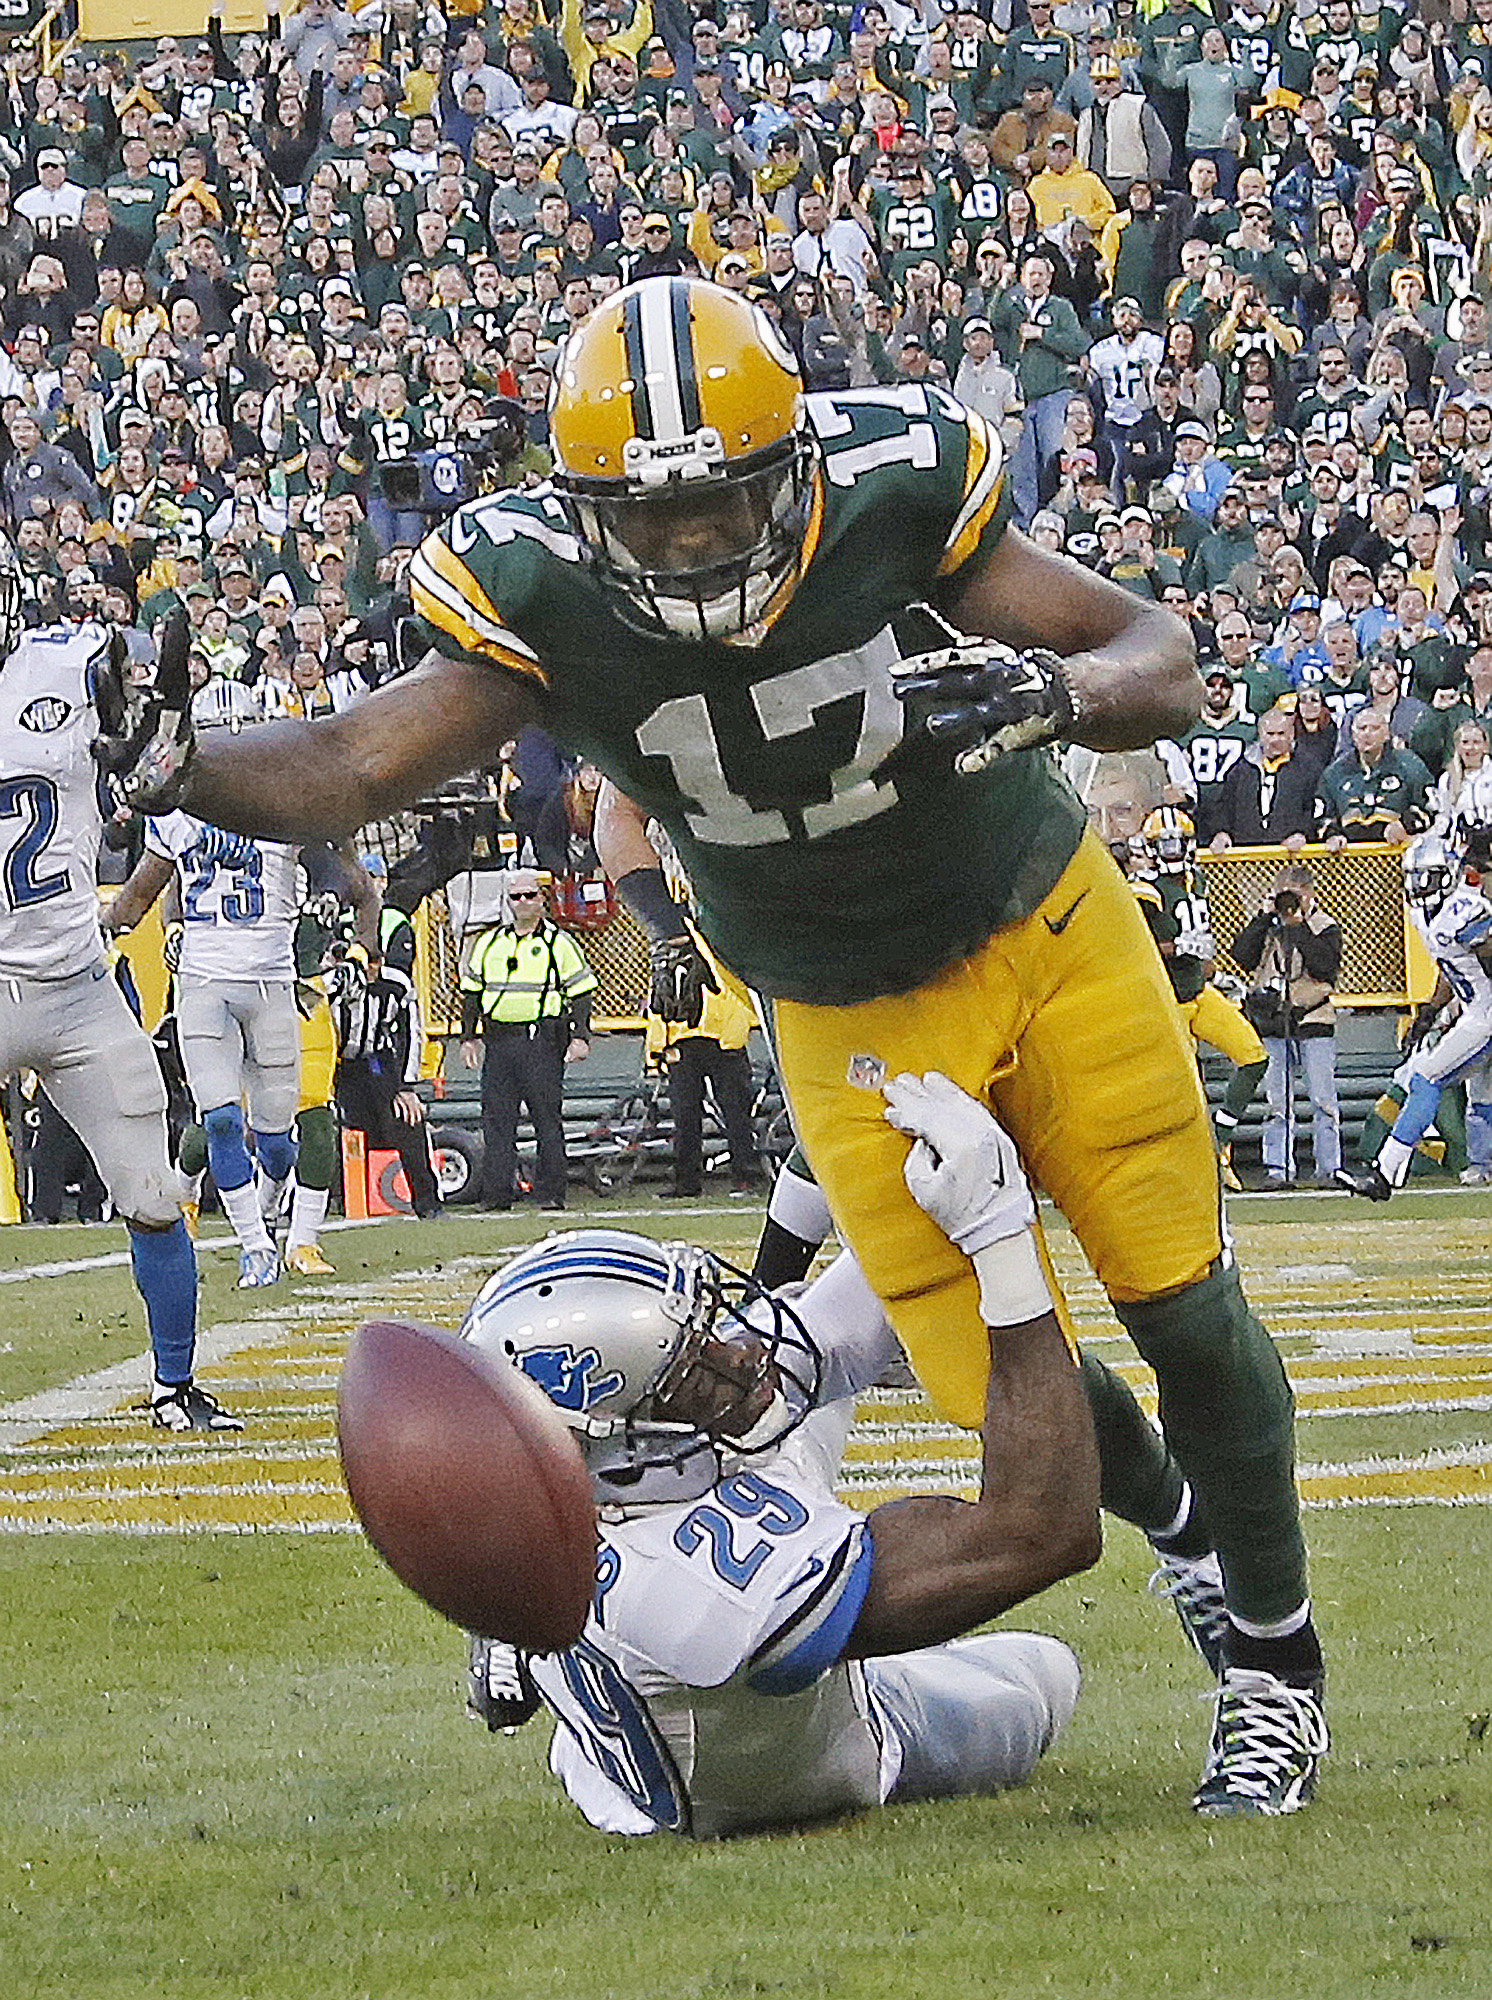 Detroit Lions' Crezdon Butler breaks up a two-point conversion intended for Green Bay Packers' Davante Adams (17) during the second half of an NFL football game Sunday, Nov. 15, 2015, in Green Bay, Wis. The Lions won 18-16. (AP Photo/Morry Gash)